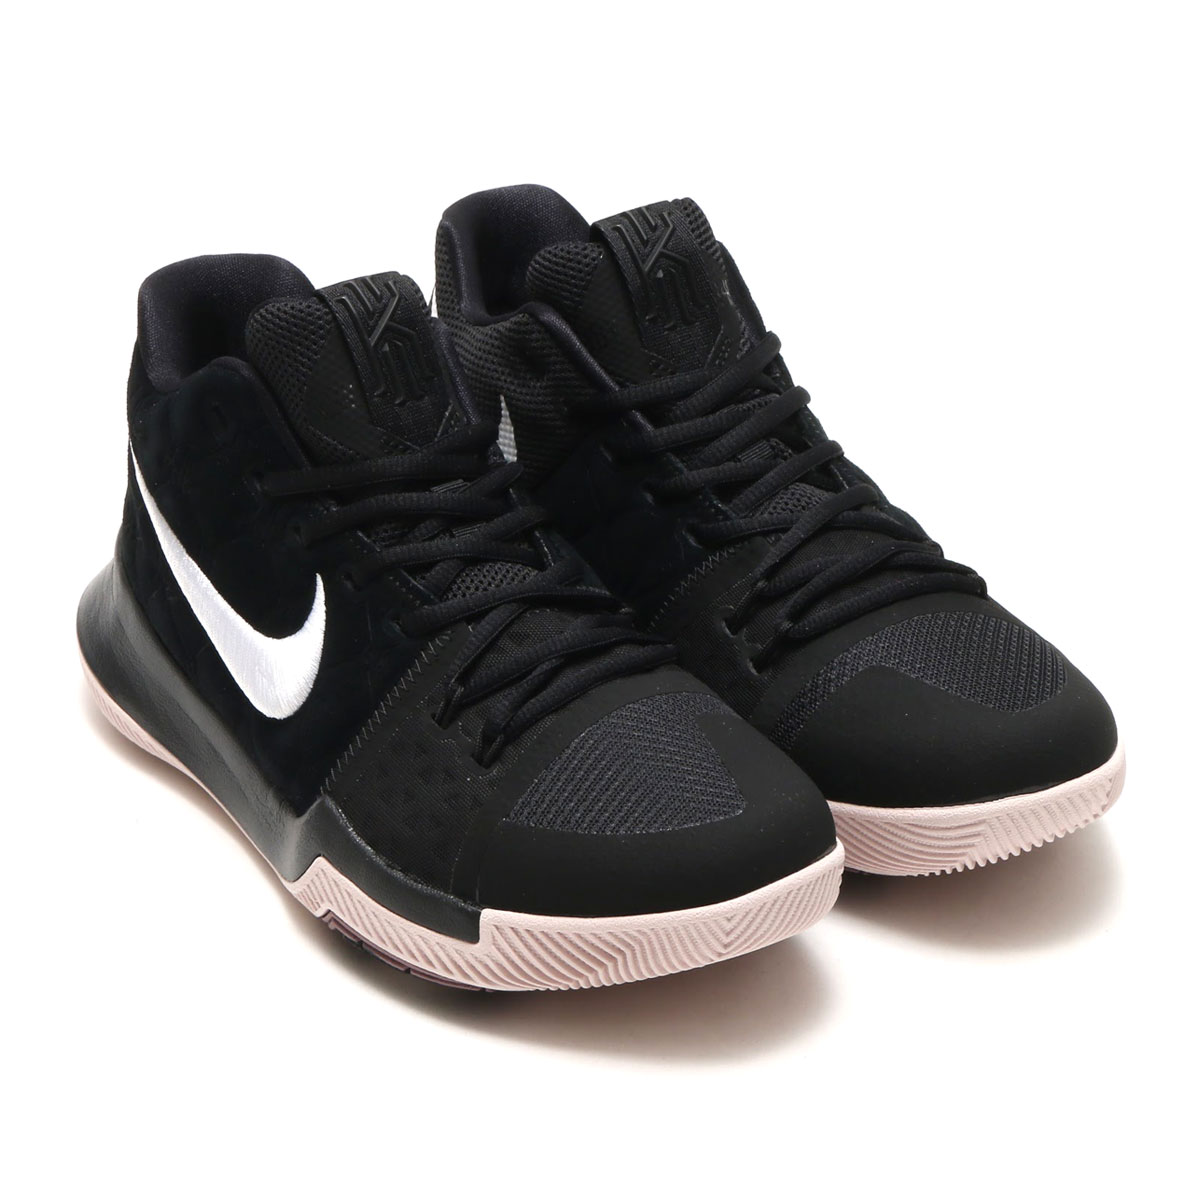 68088f0003ad The moment when the chi Lee 3 EP men basketball shoes put outstanding  traction